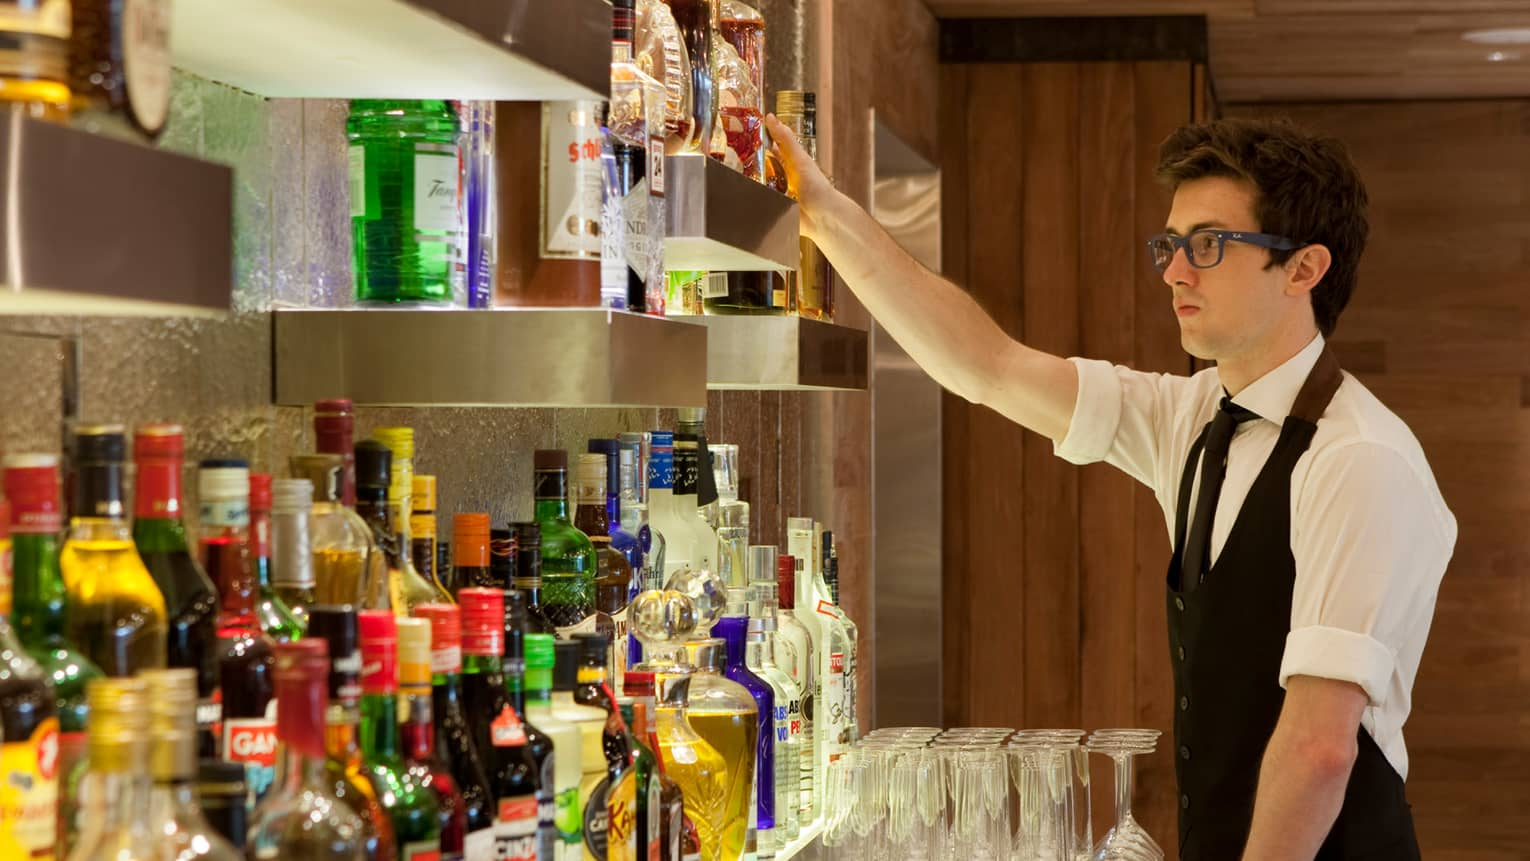 Pony Line bartender in white shirt, black vest, glasses reaches for a bottle on liquor display shelf